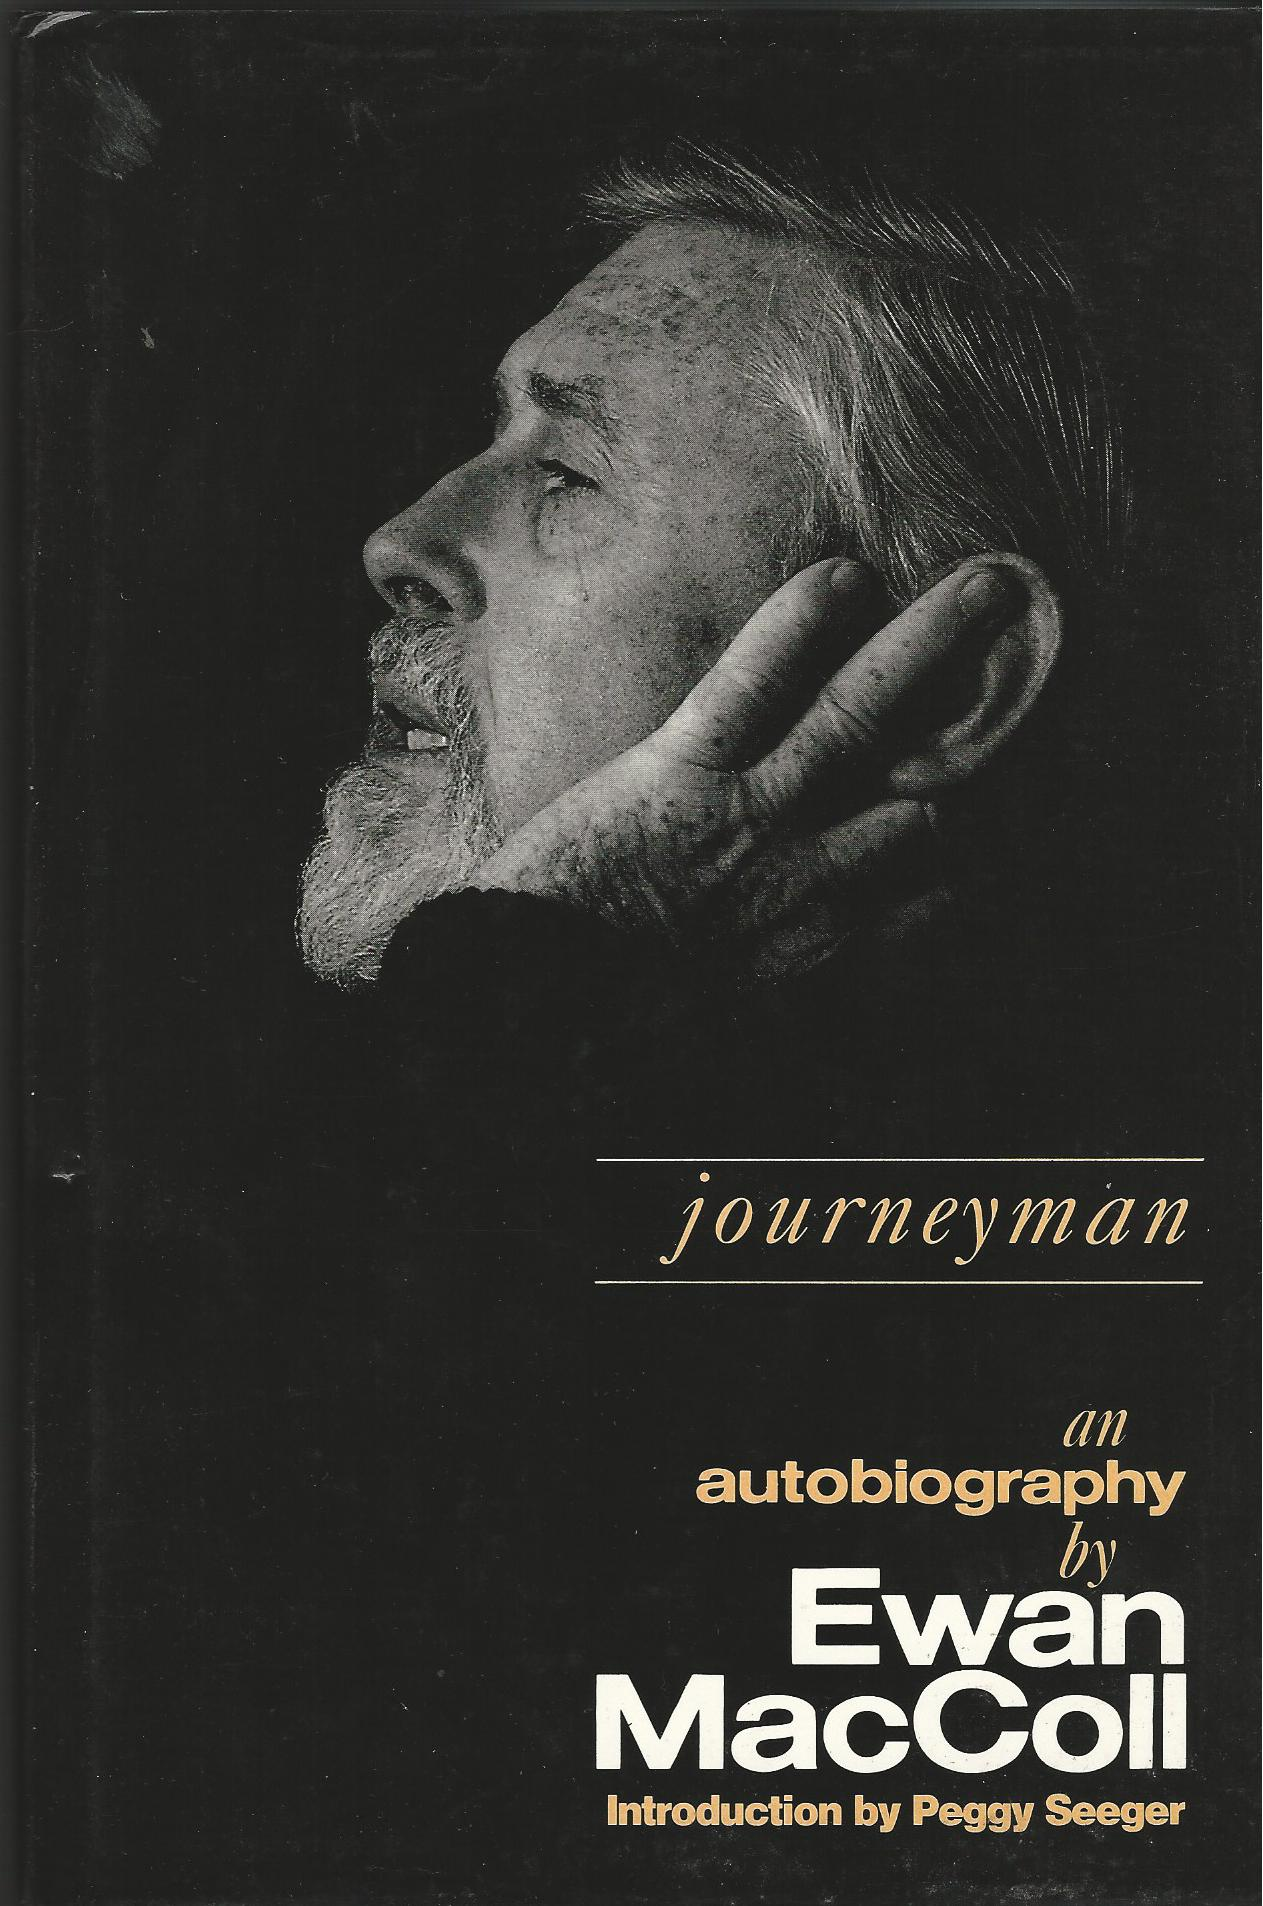 Image for Journeyman: The Autobiography Of Ewan Maccoll